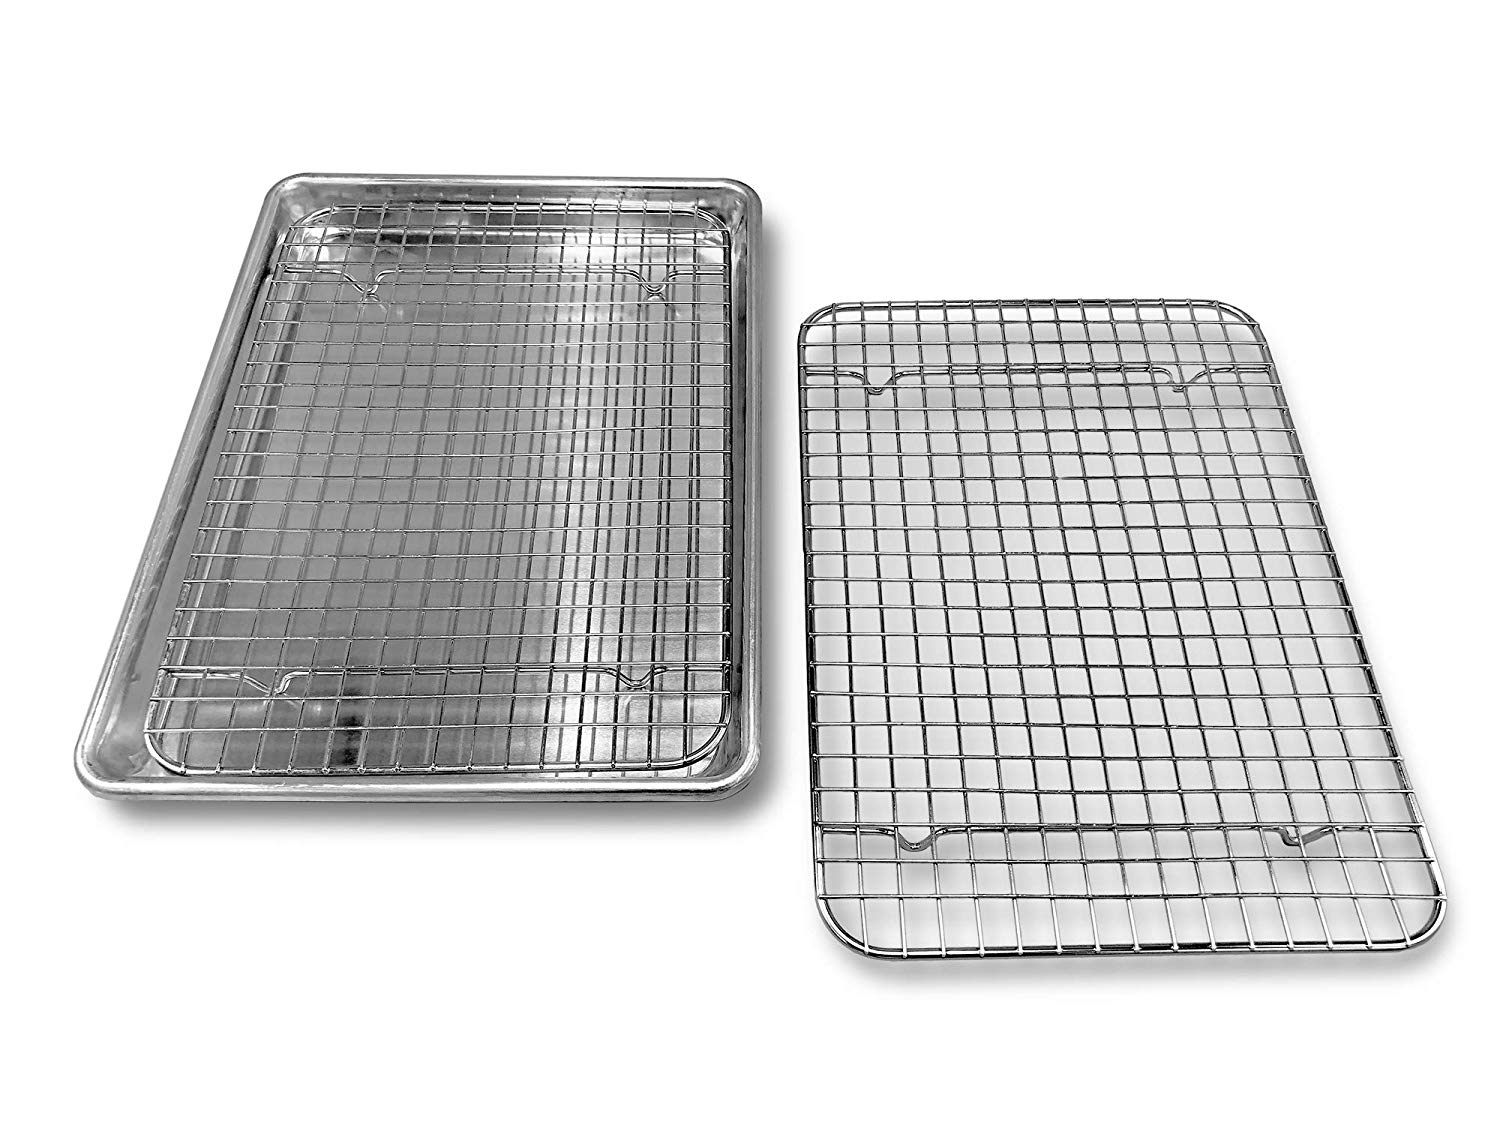 goson kitchen stainless steel heavy duty metal wire cooling cooking baking rack for baking sheet oven safe up to 575f dishwasher safe rust free